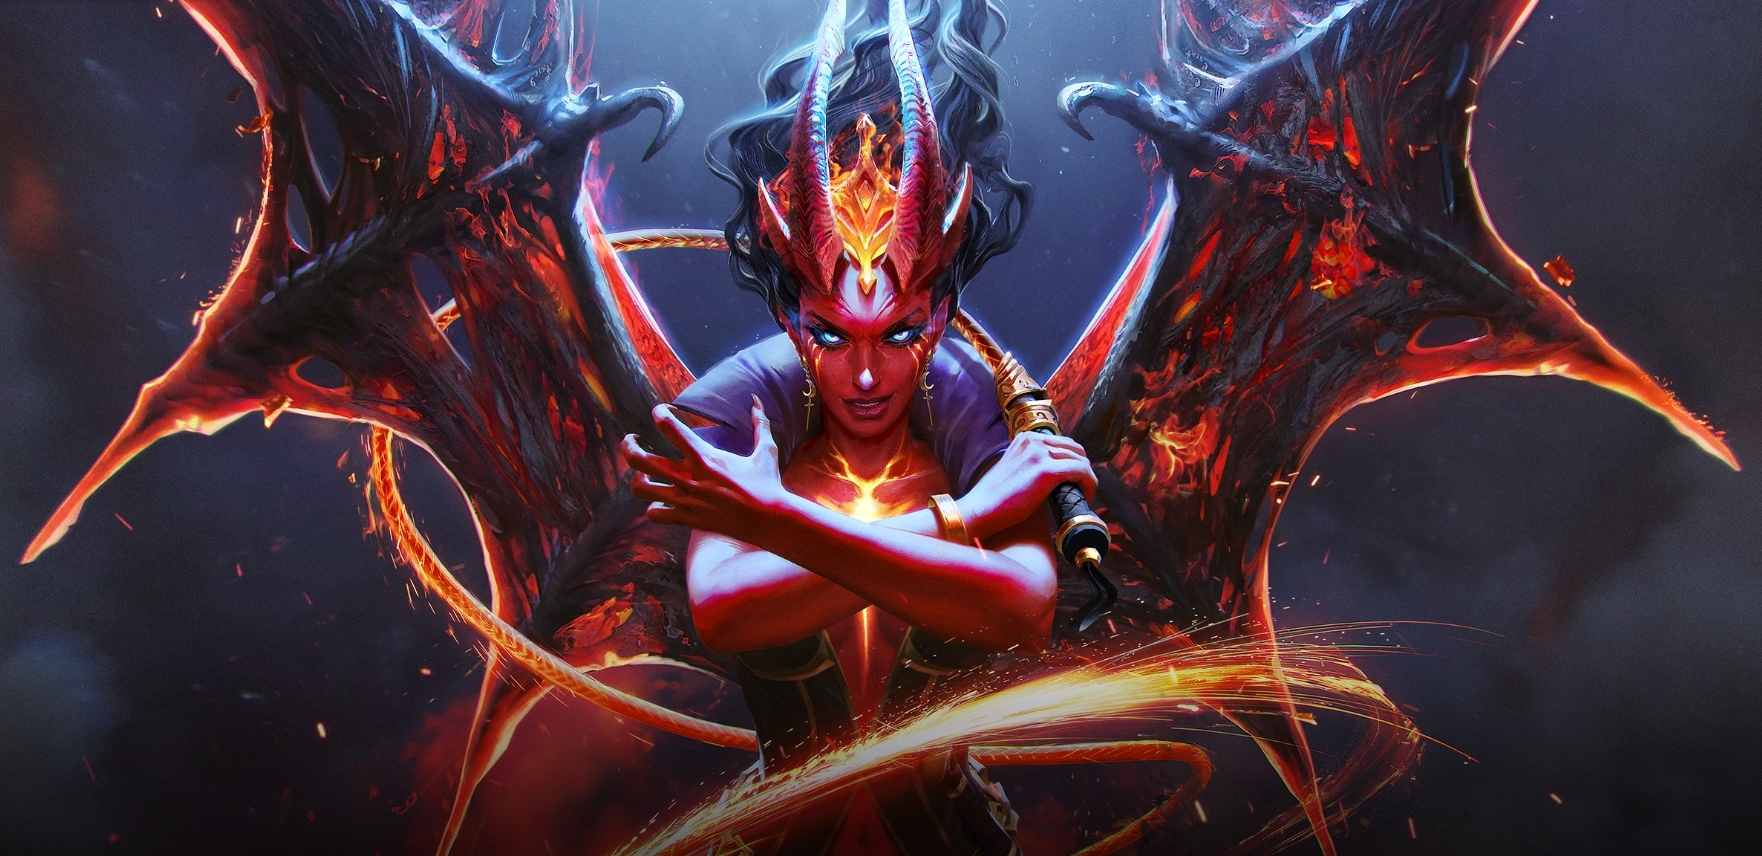 Players are abusing Dota 2's Guild recruitment system to send inappropriate images